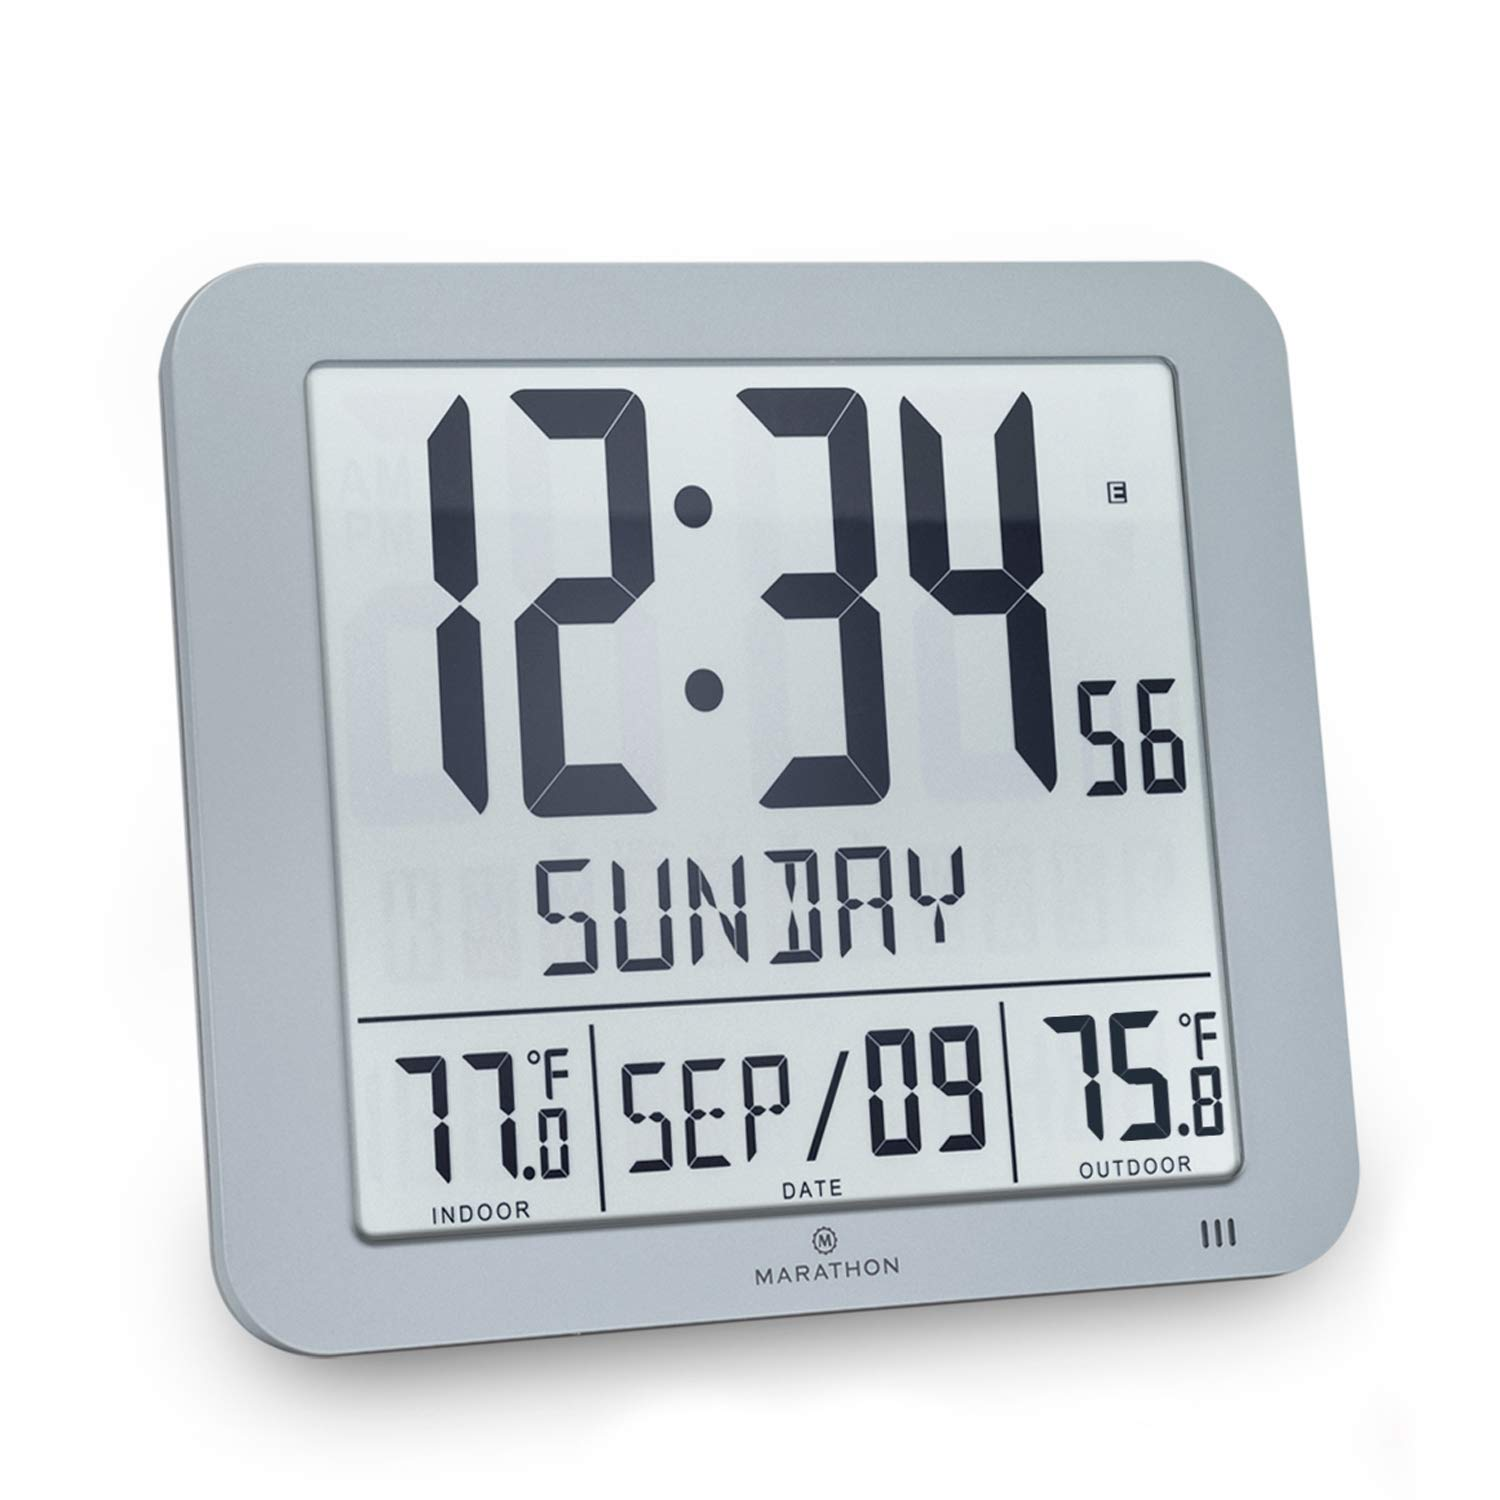 Marathon CL030027-FD-GG Slim Atomic Wall Clock with Indoor/Outdoor Temperature, Full Calendar and Large Display (New Full Display) Color: Graphite Grey by Marathon